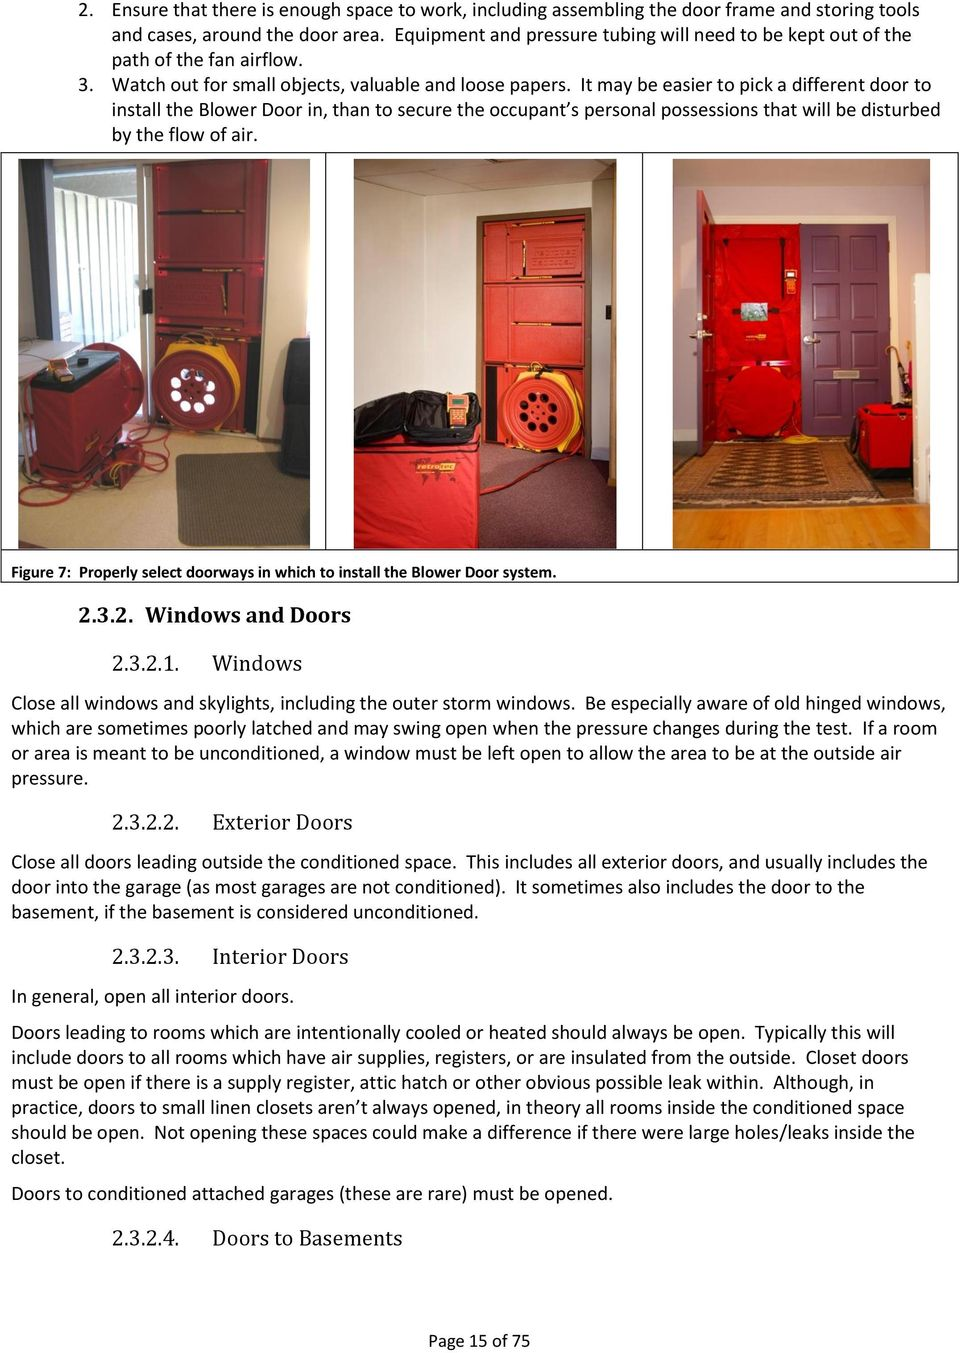 It may be easier to pick a different door to install the Blower Door in, than to secure the occupant s personal possessions that will be disturbed by the flow of air.